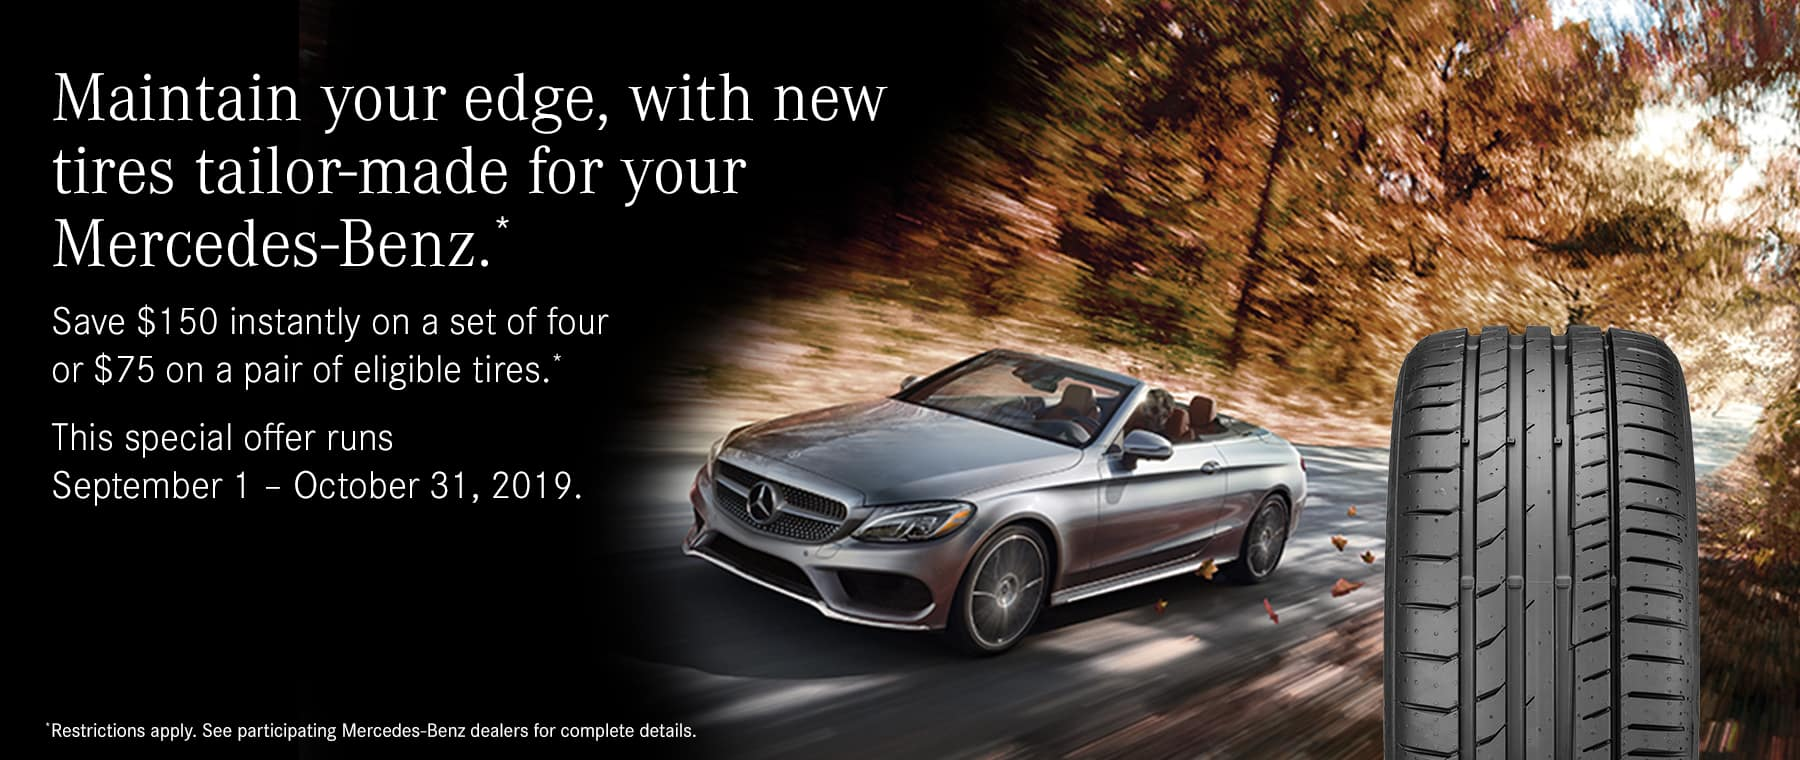 new tires tailor-made for your mercedes-benz